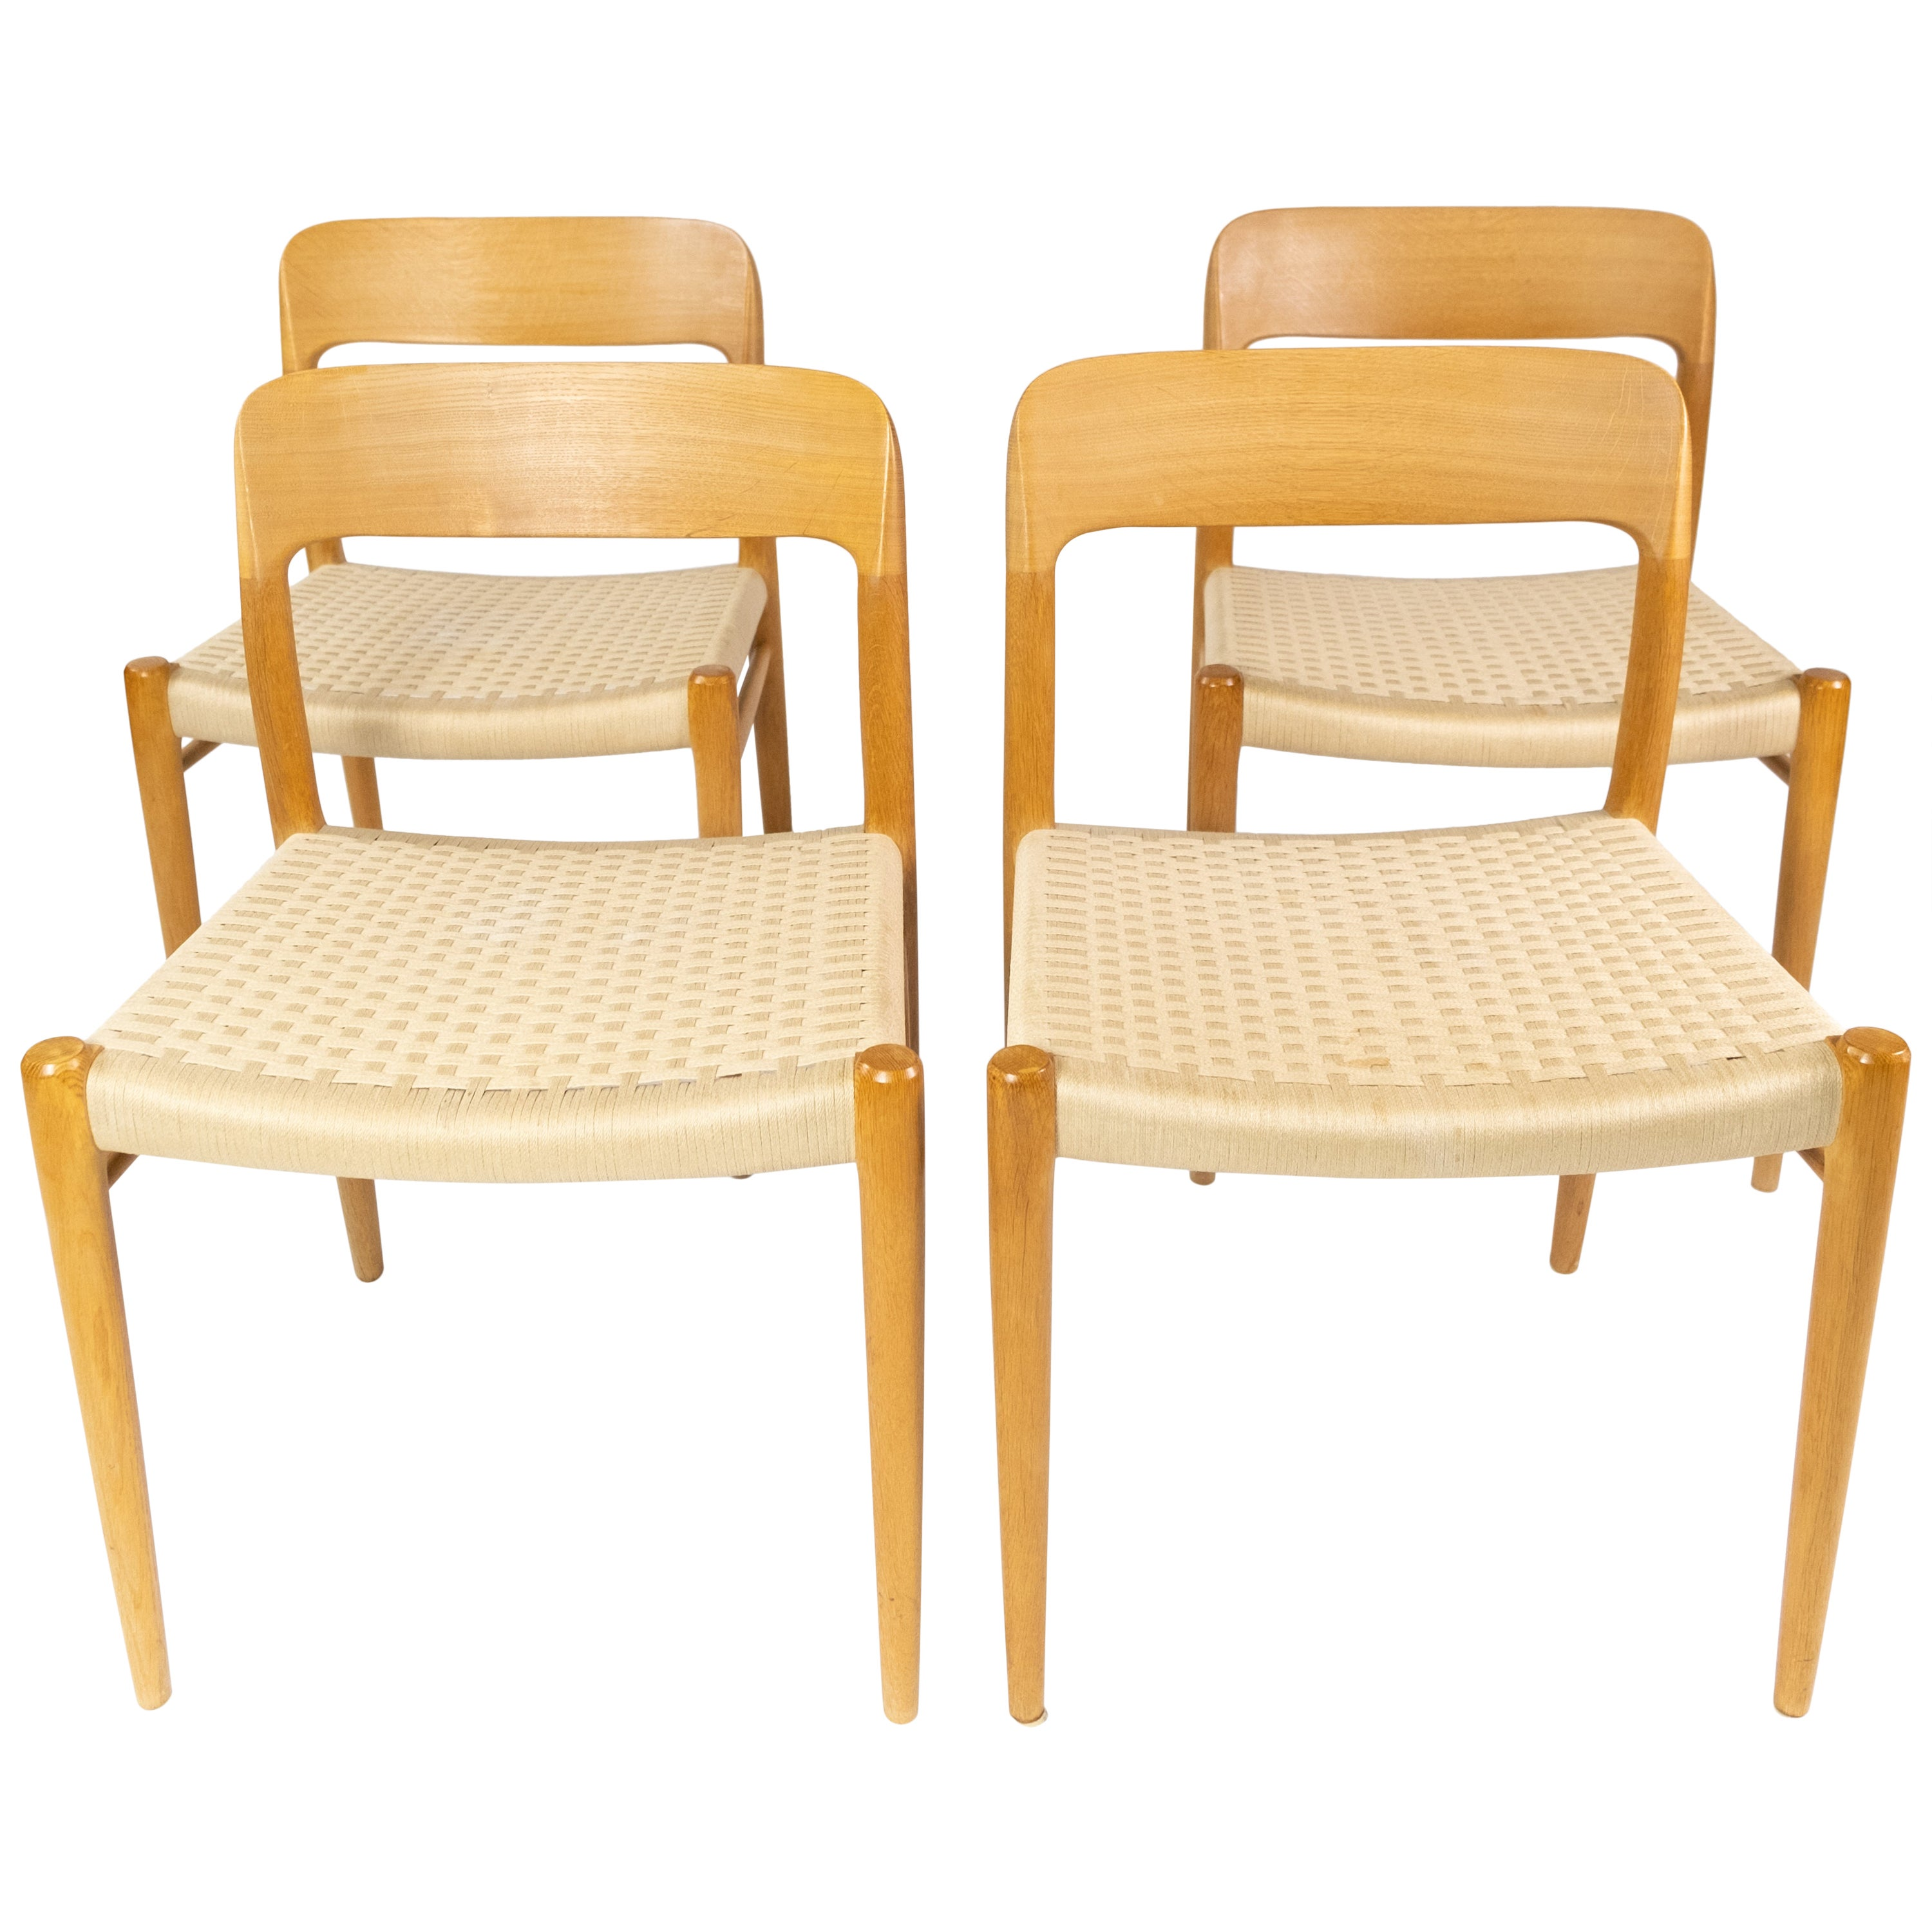 Set of Four Dining Chairs, Model 75, in Oak and Papercord by N.O. Møller